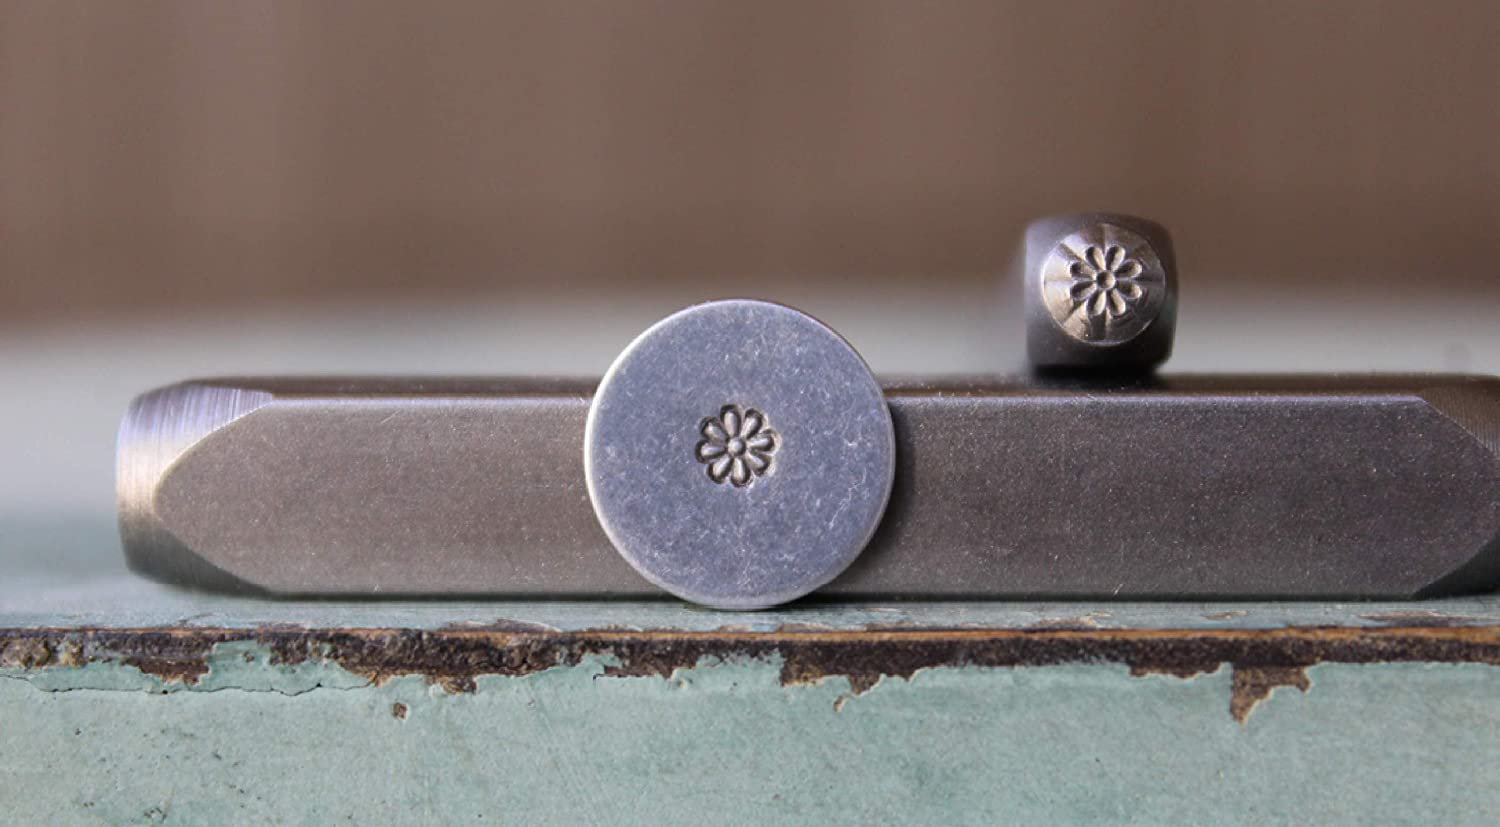 3mm Simple Flower Metal Punch Design Stamp - Supply Guy - CH-437